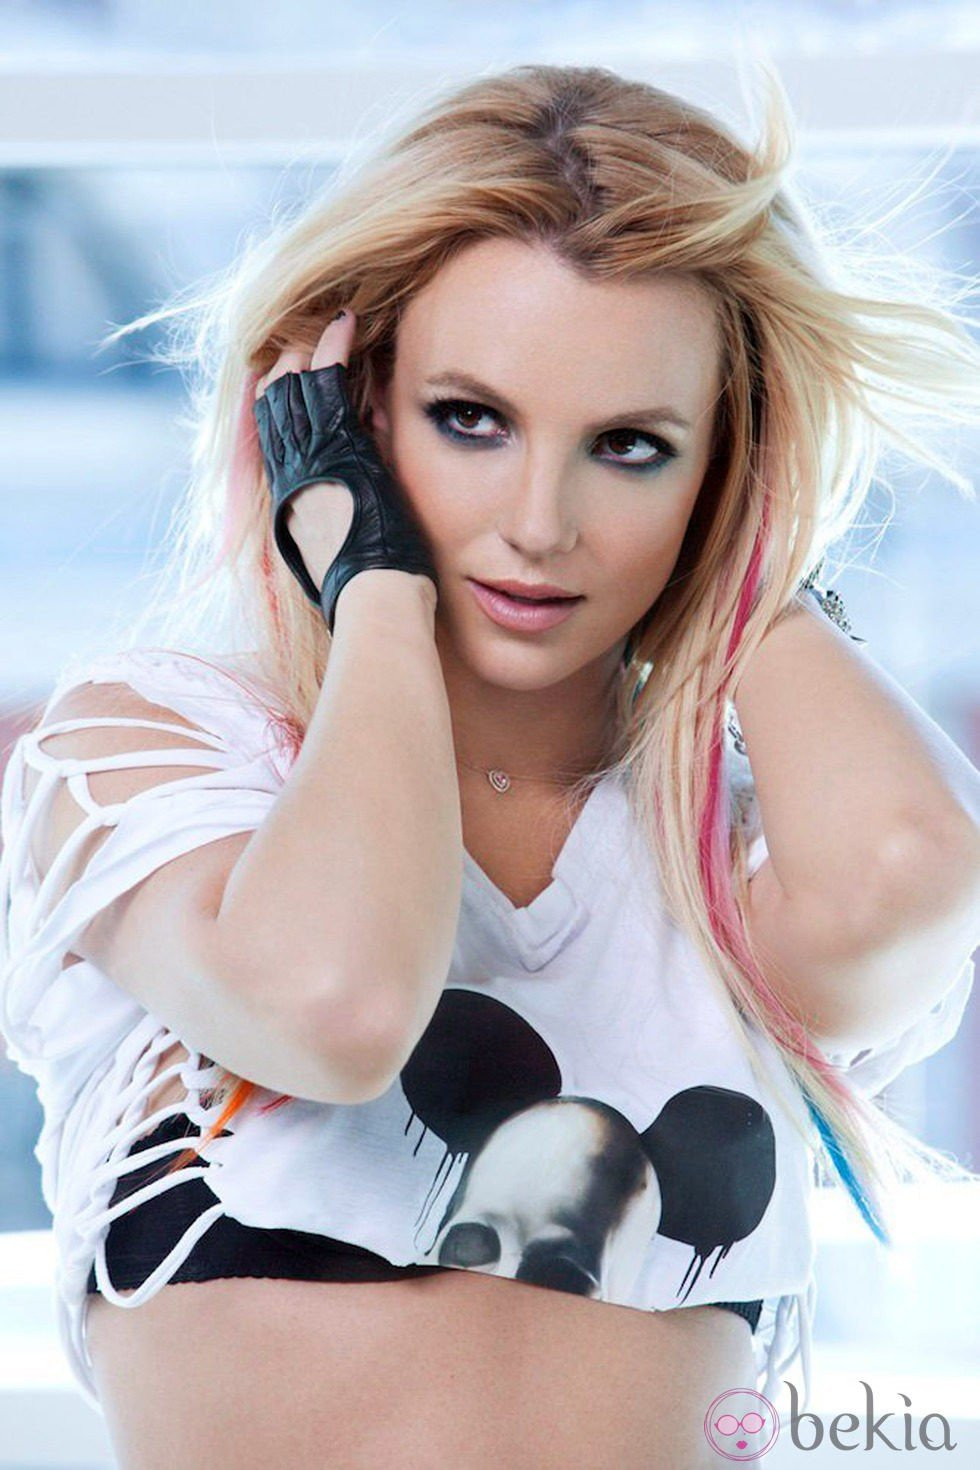 Iconic Looks From Each Era Page 2 Britney Spears Breatheheavy Exhale